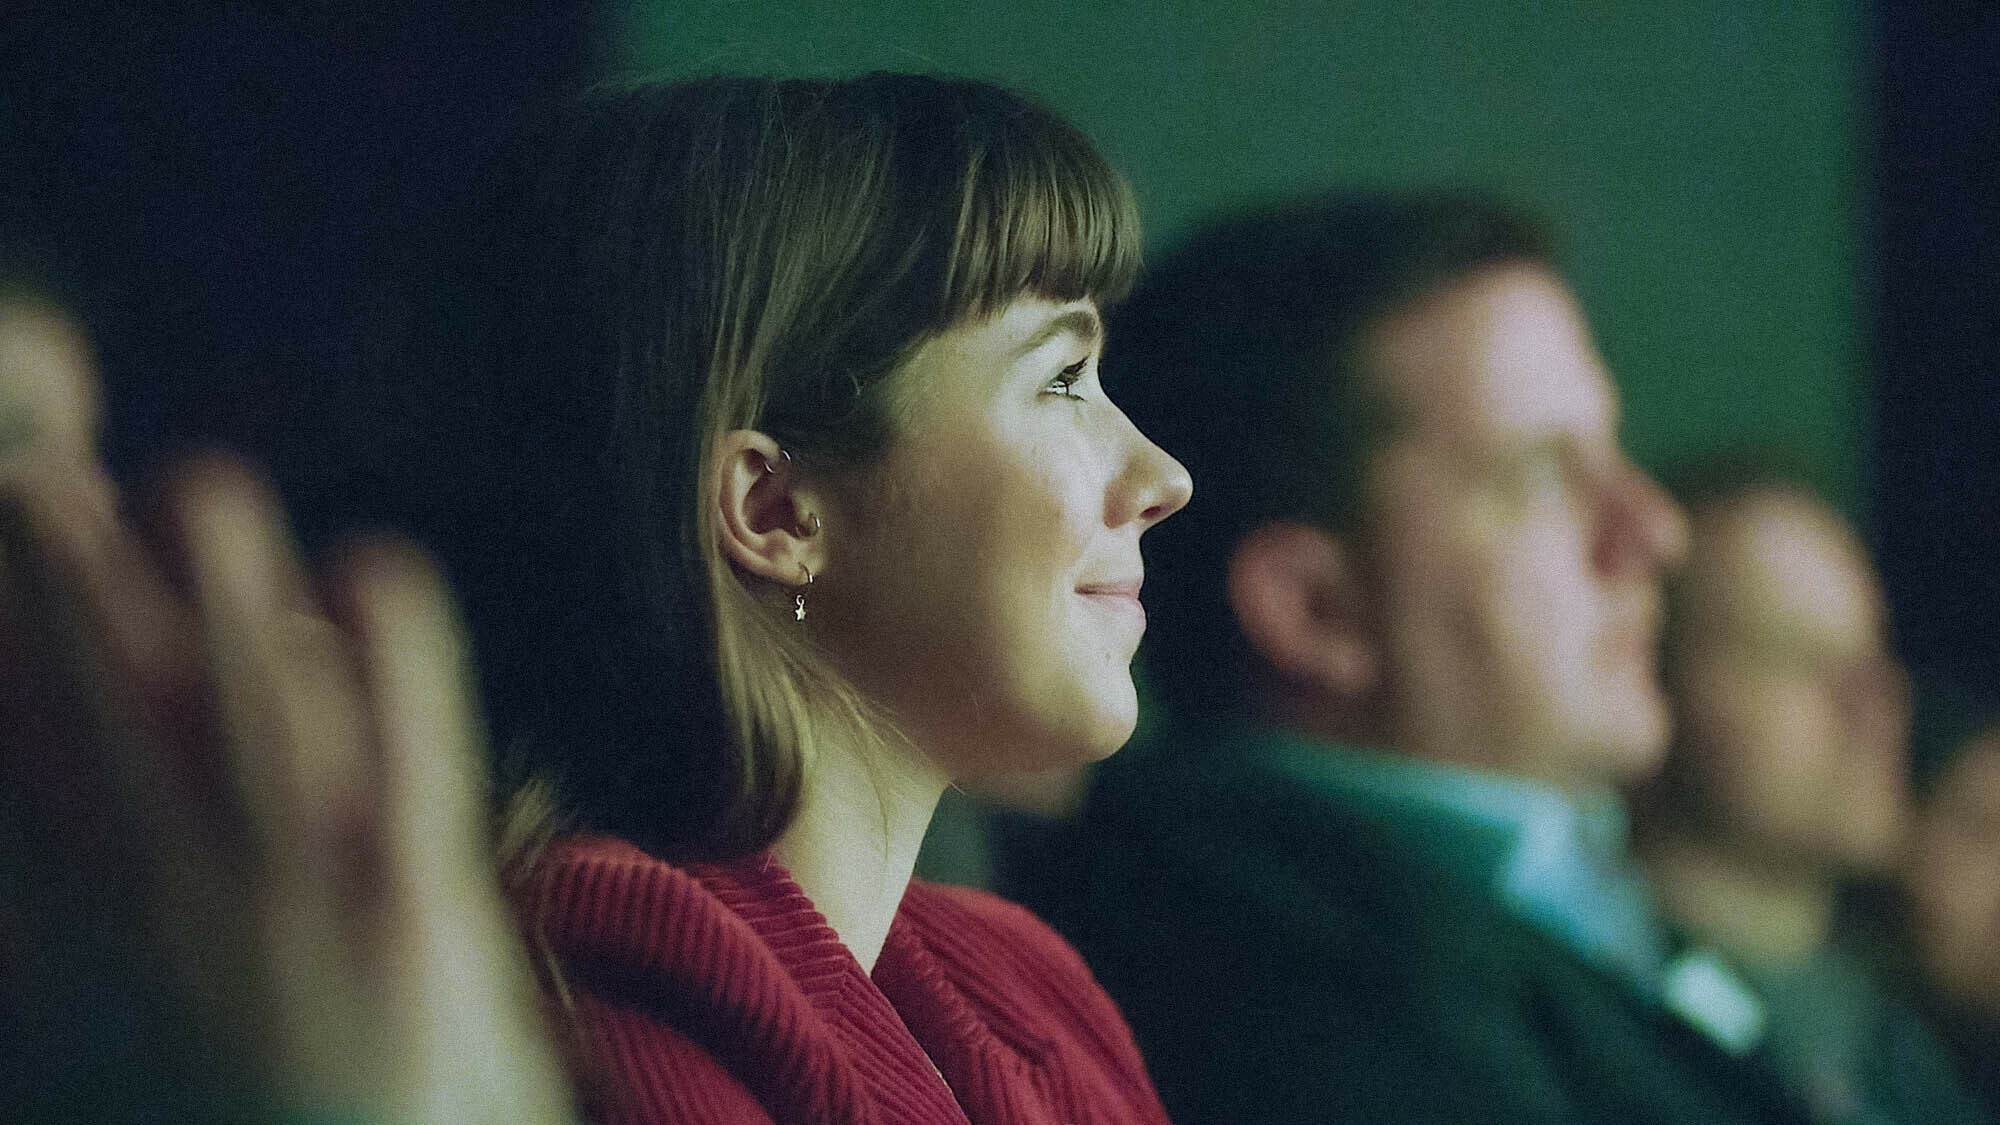 Woman in an audience smiling at a Relay event by Raw London